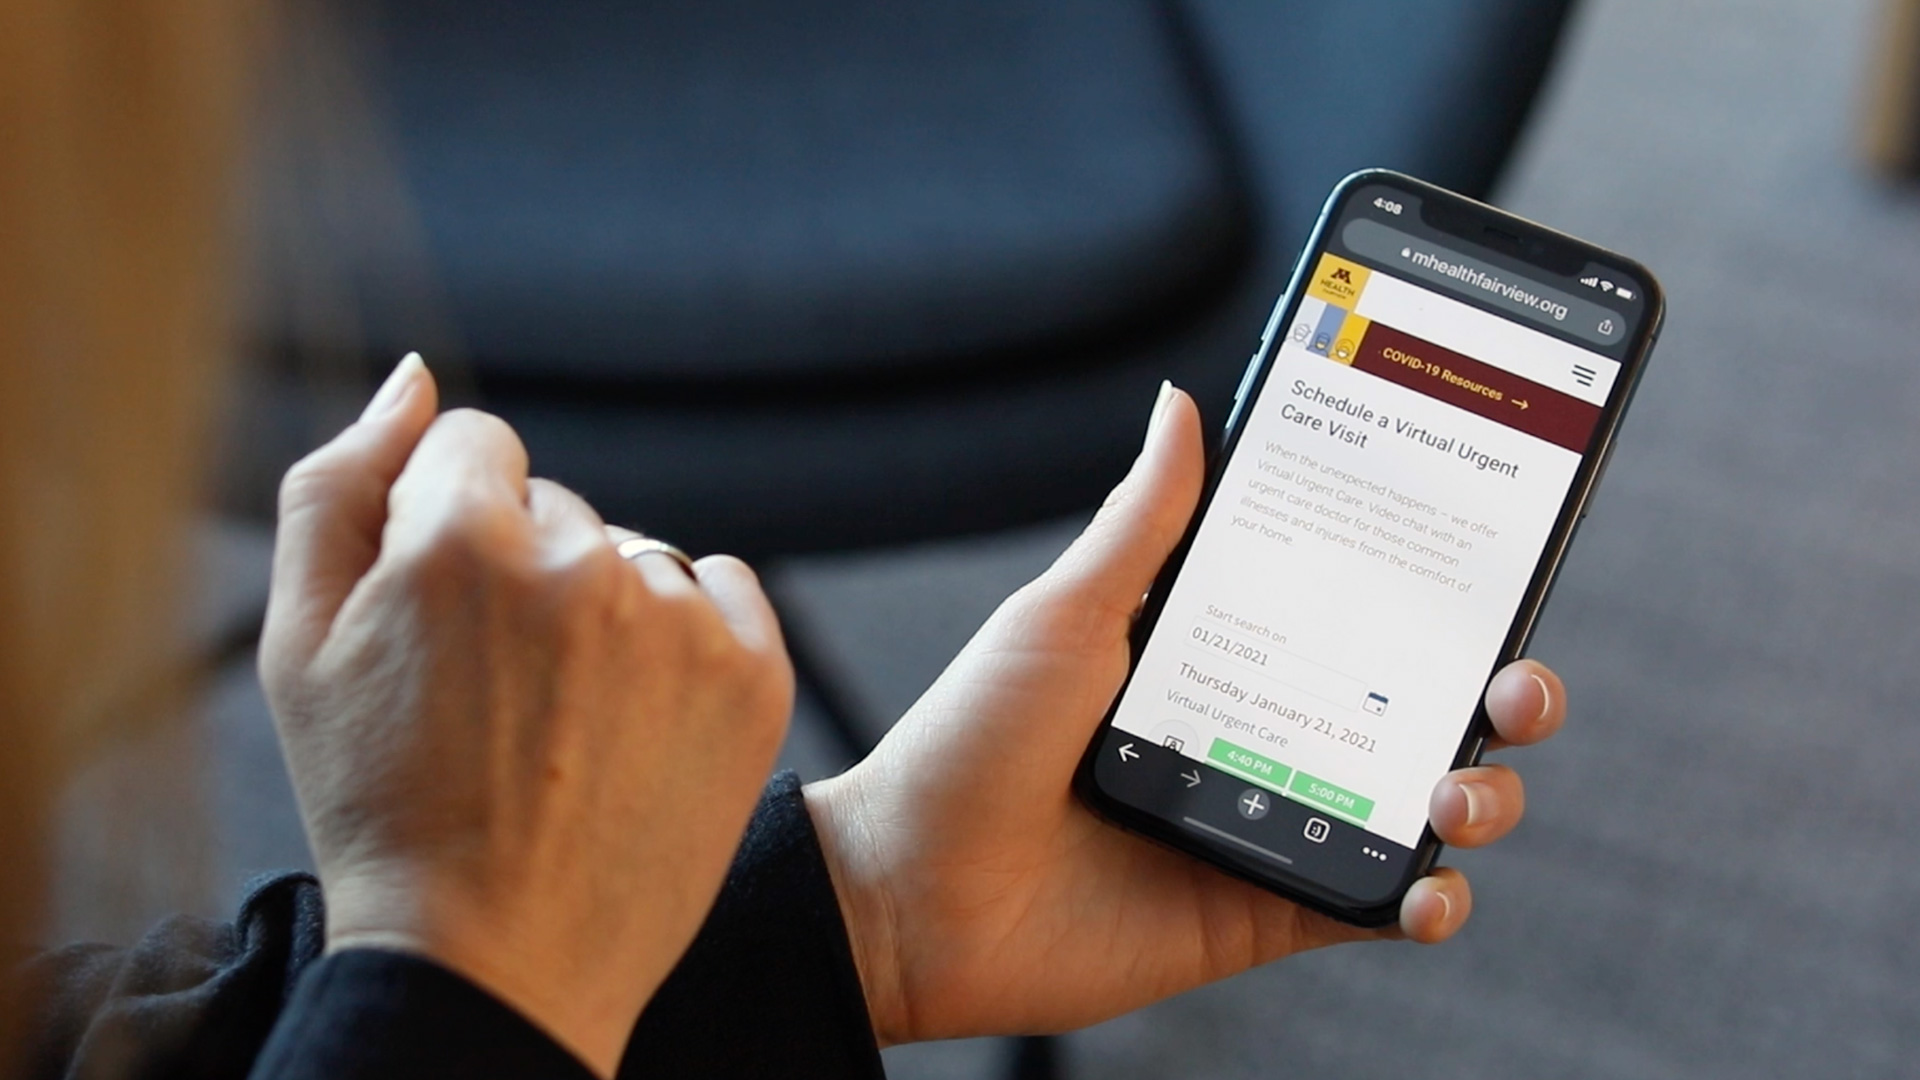 Hands holding a mobile phone and navigating M Health Fairview website